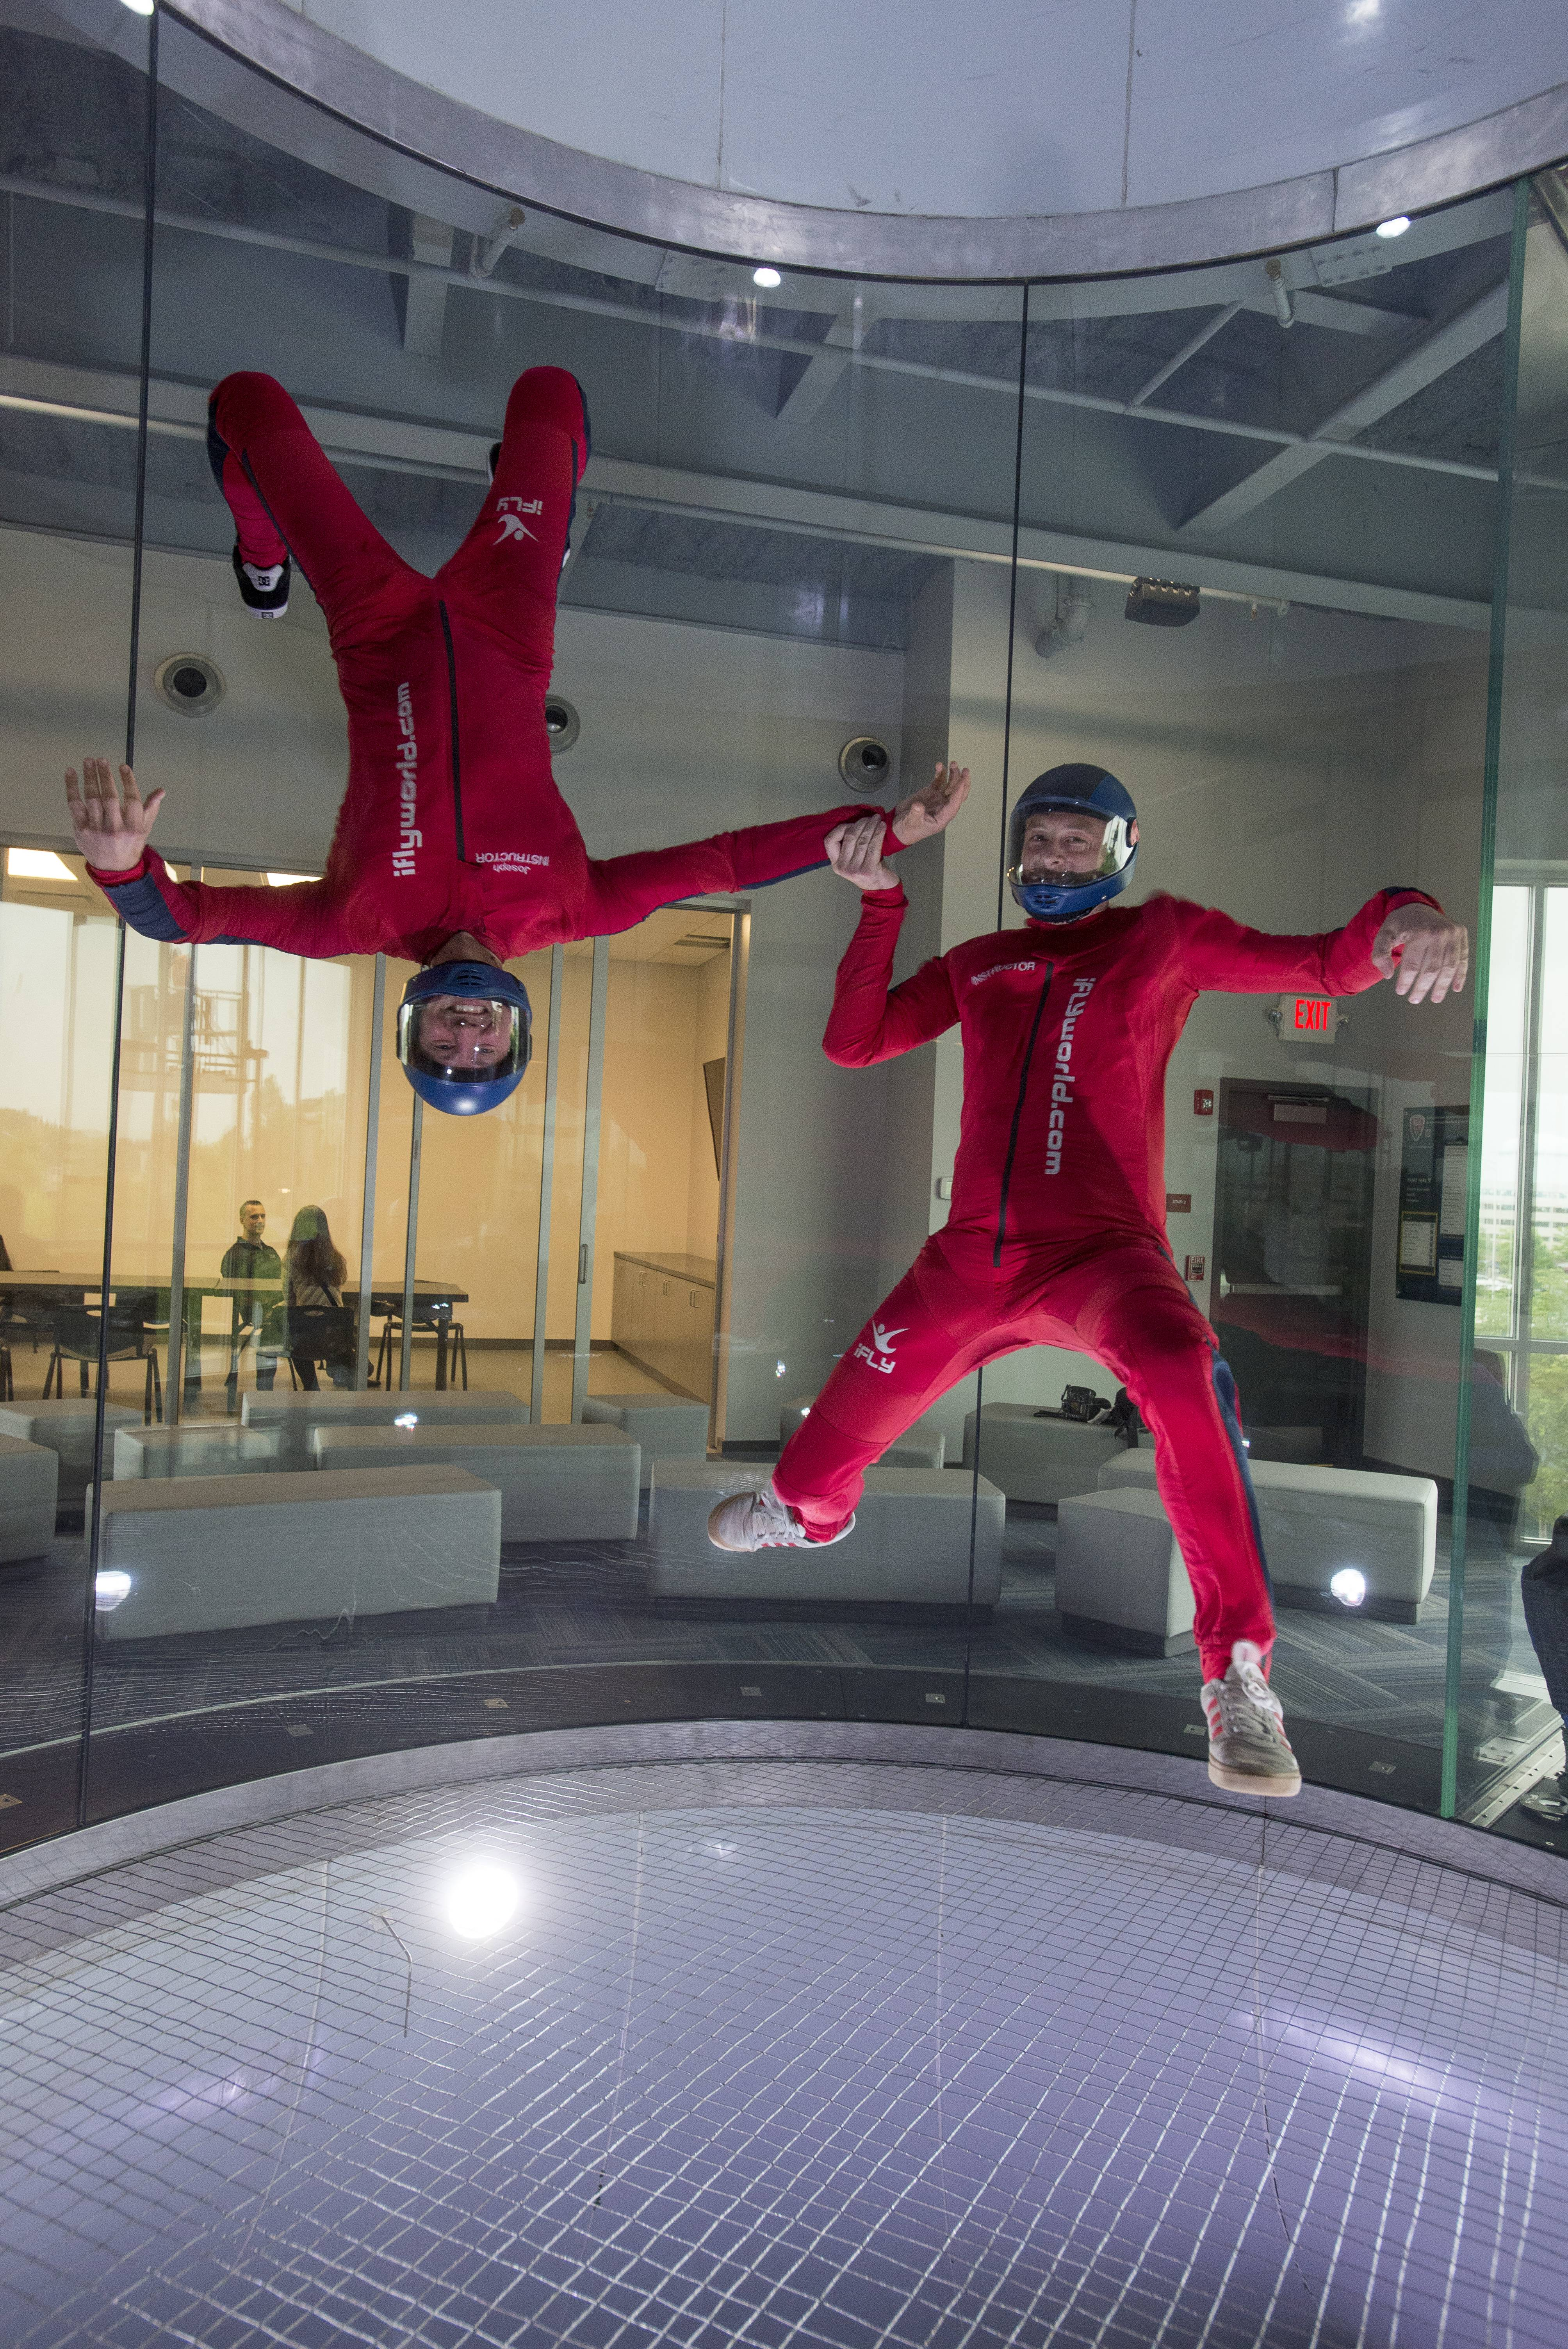 iFly instructors Joey Mire and Gabe Roth perform some stunts at the new indoor sky-diving venue in Naperville.